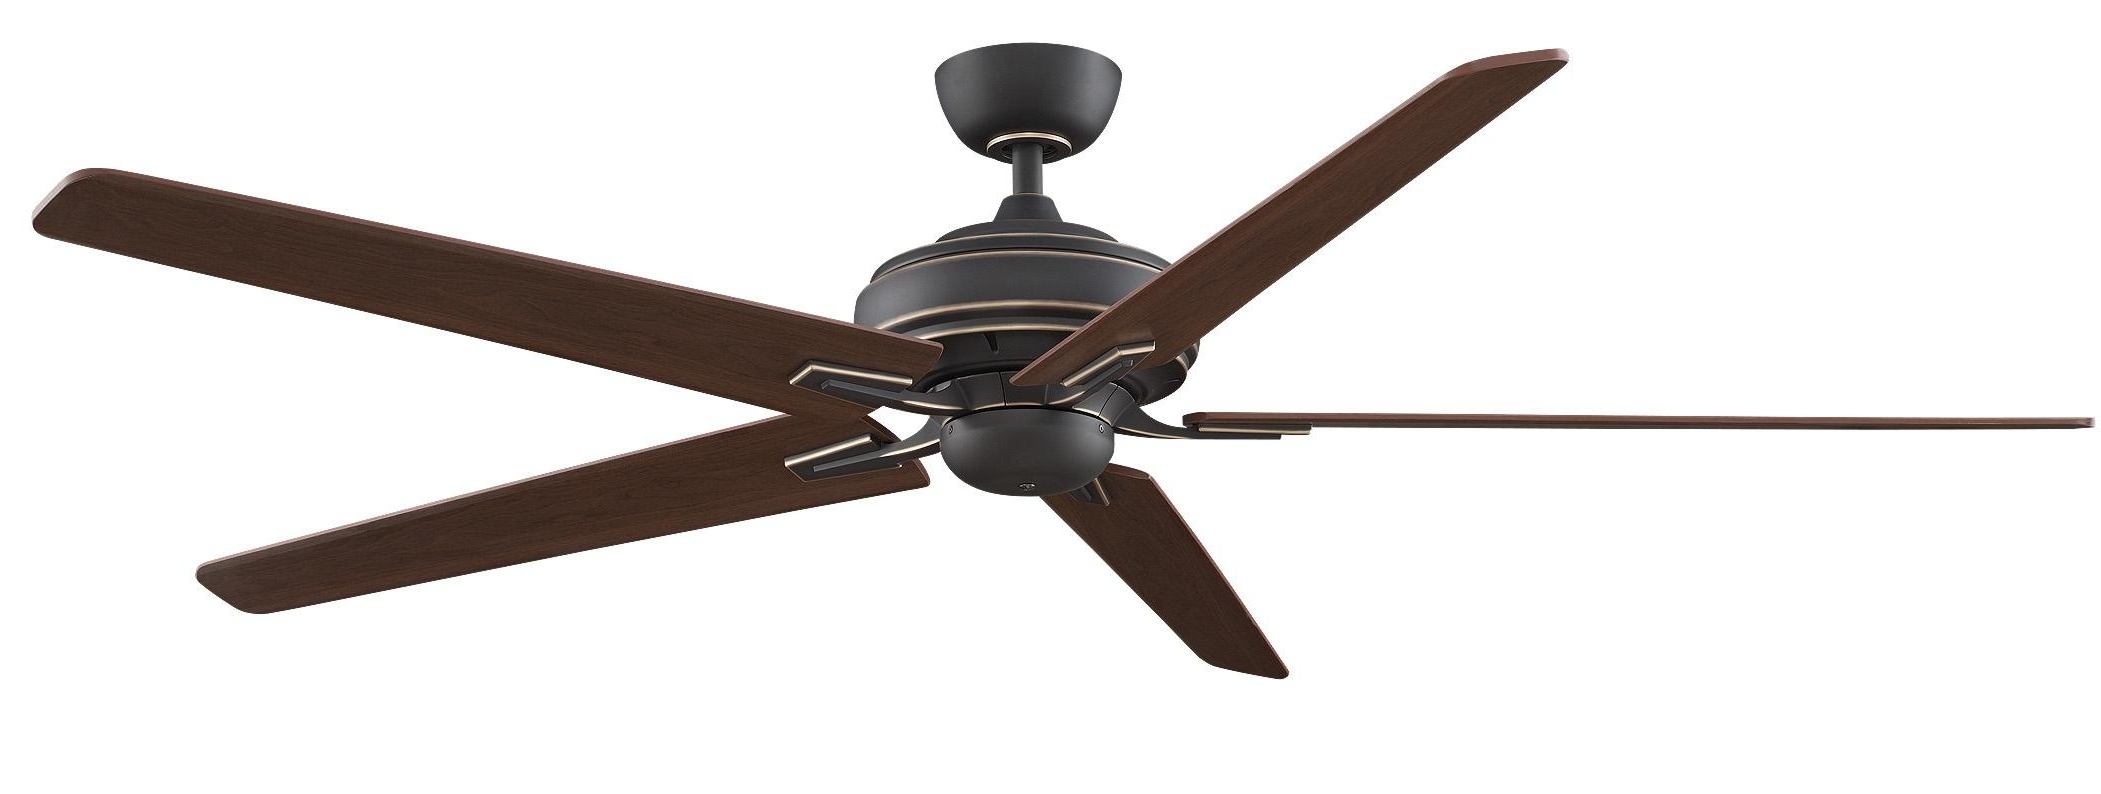 Inch Outdoor Ceiling Fan With 60 Ceiling Fan With Light Within Favorite Outdoor Ceiling Fans And Lights (View 13 of 20)